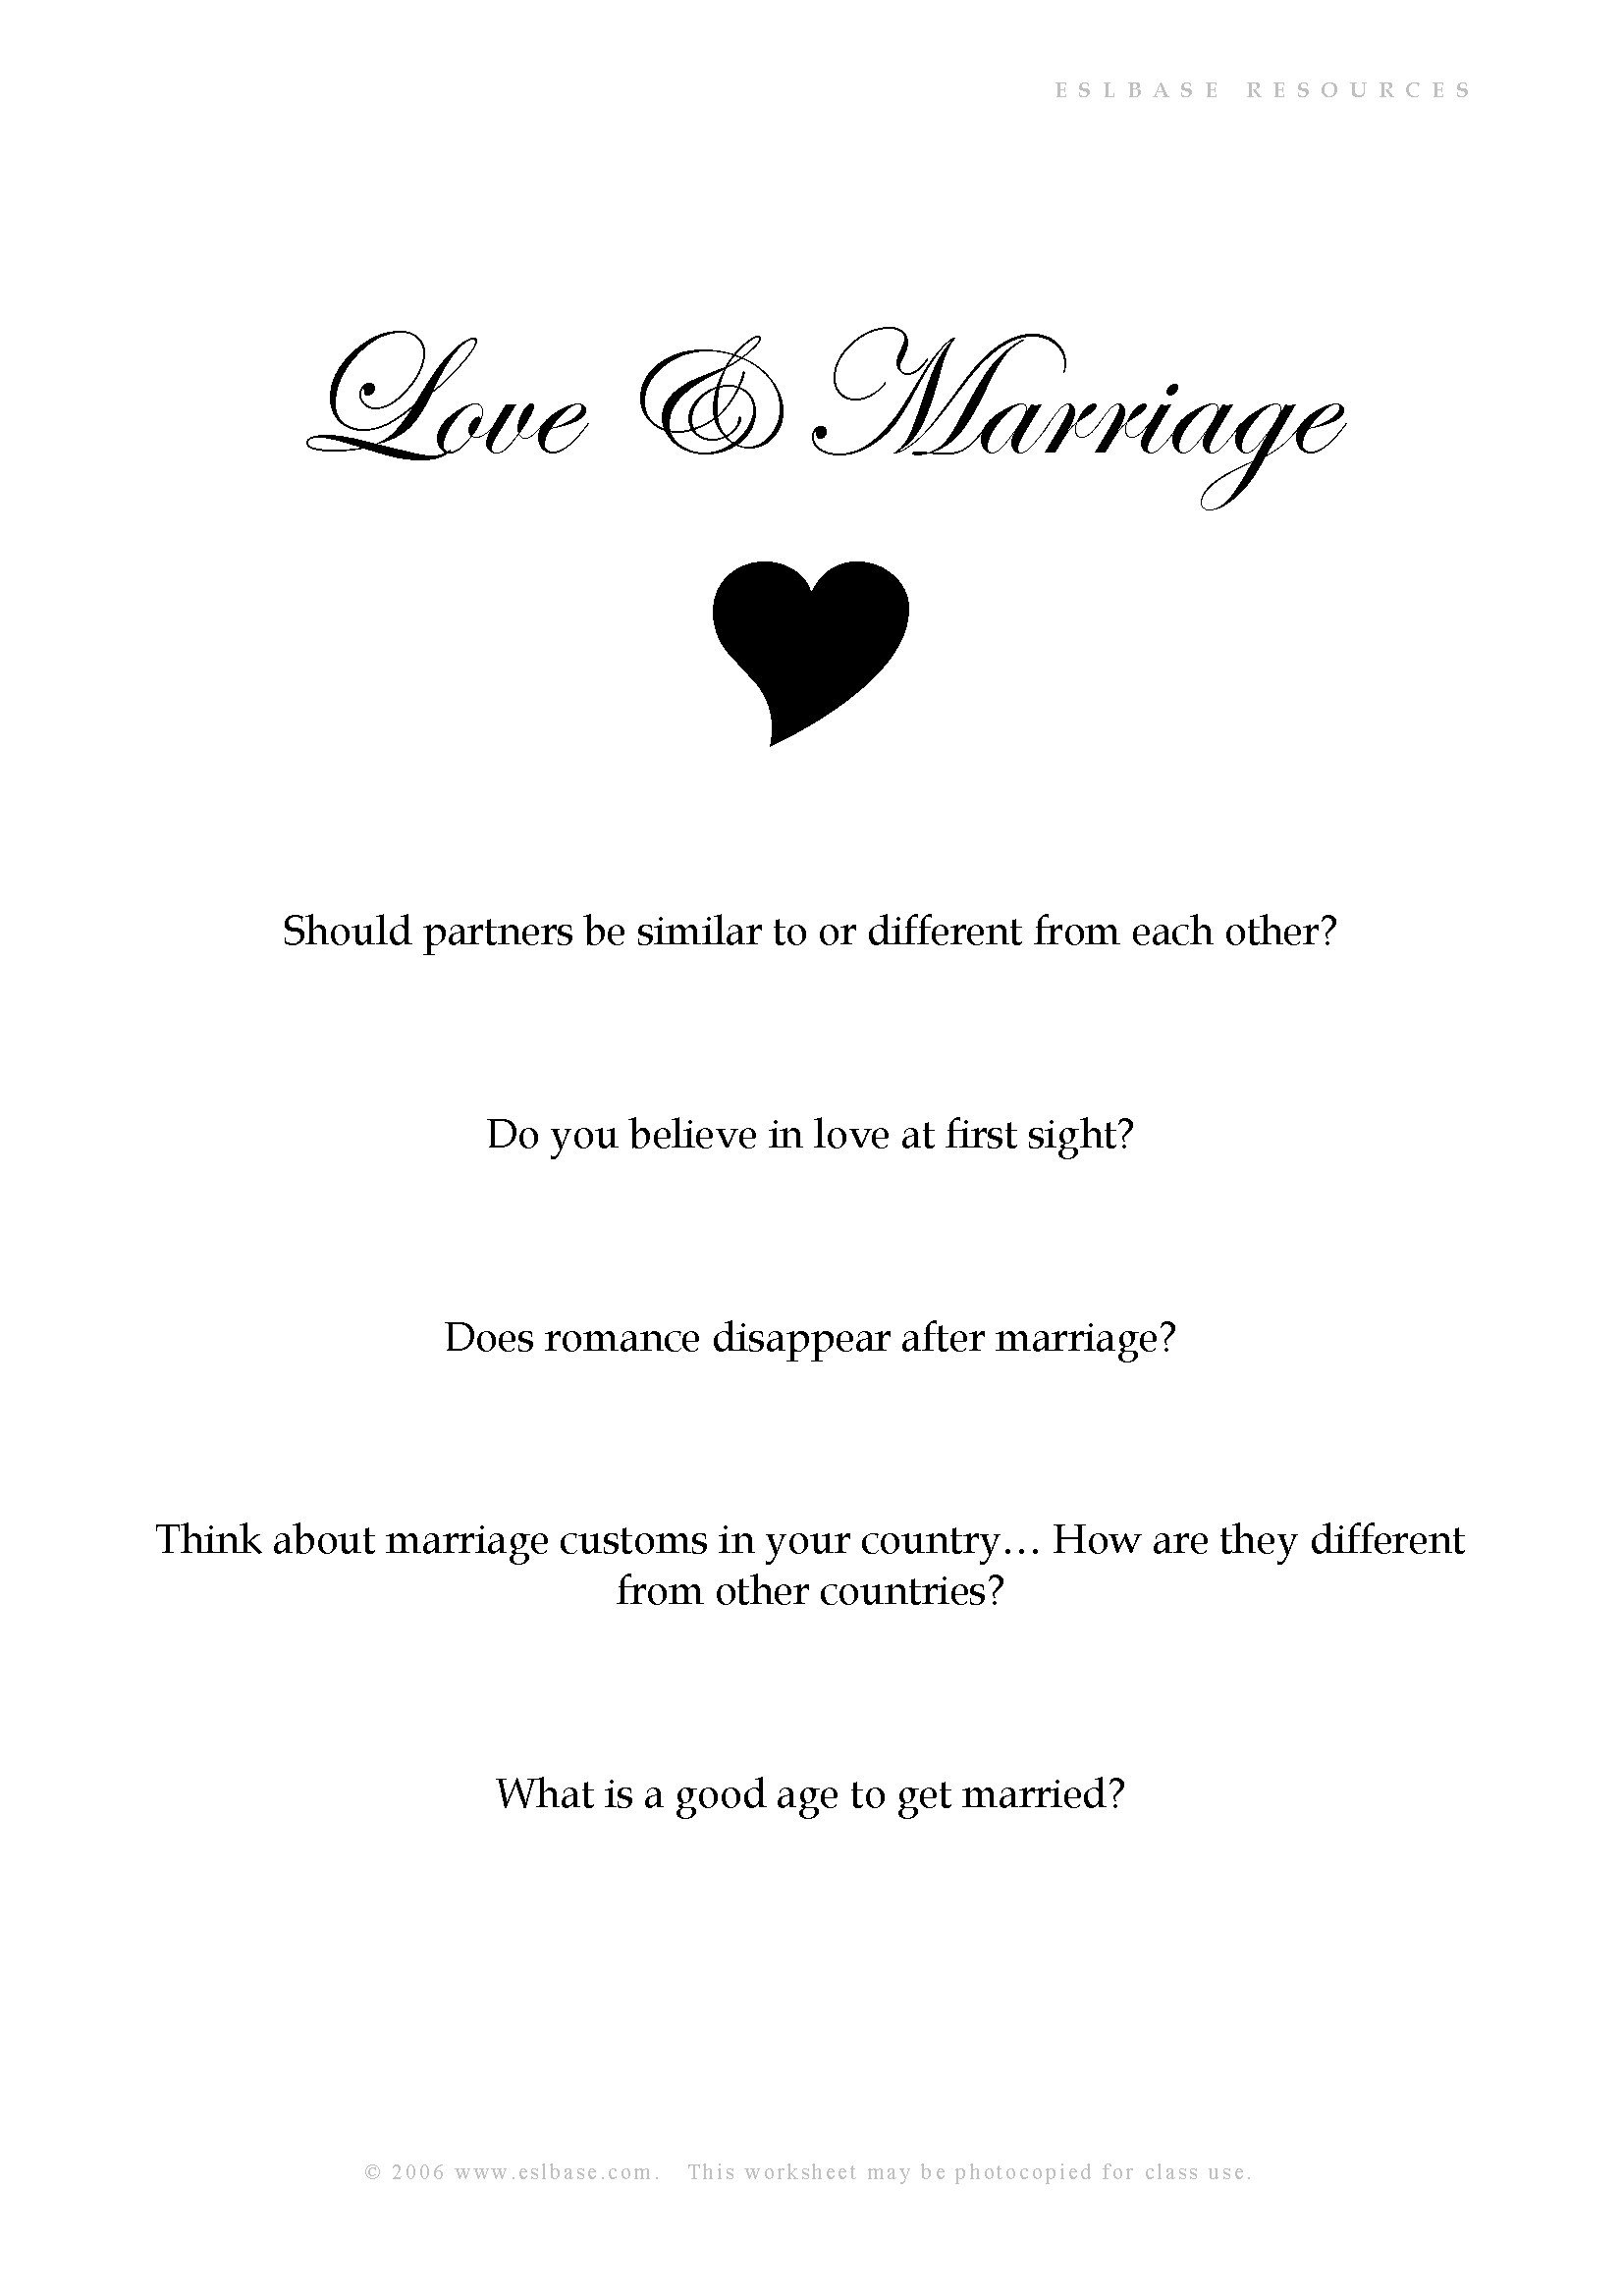 Love and marriage conversation ESL worksheet